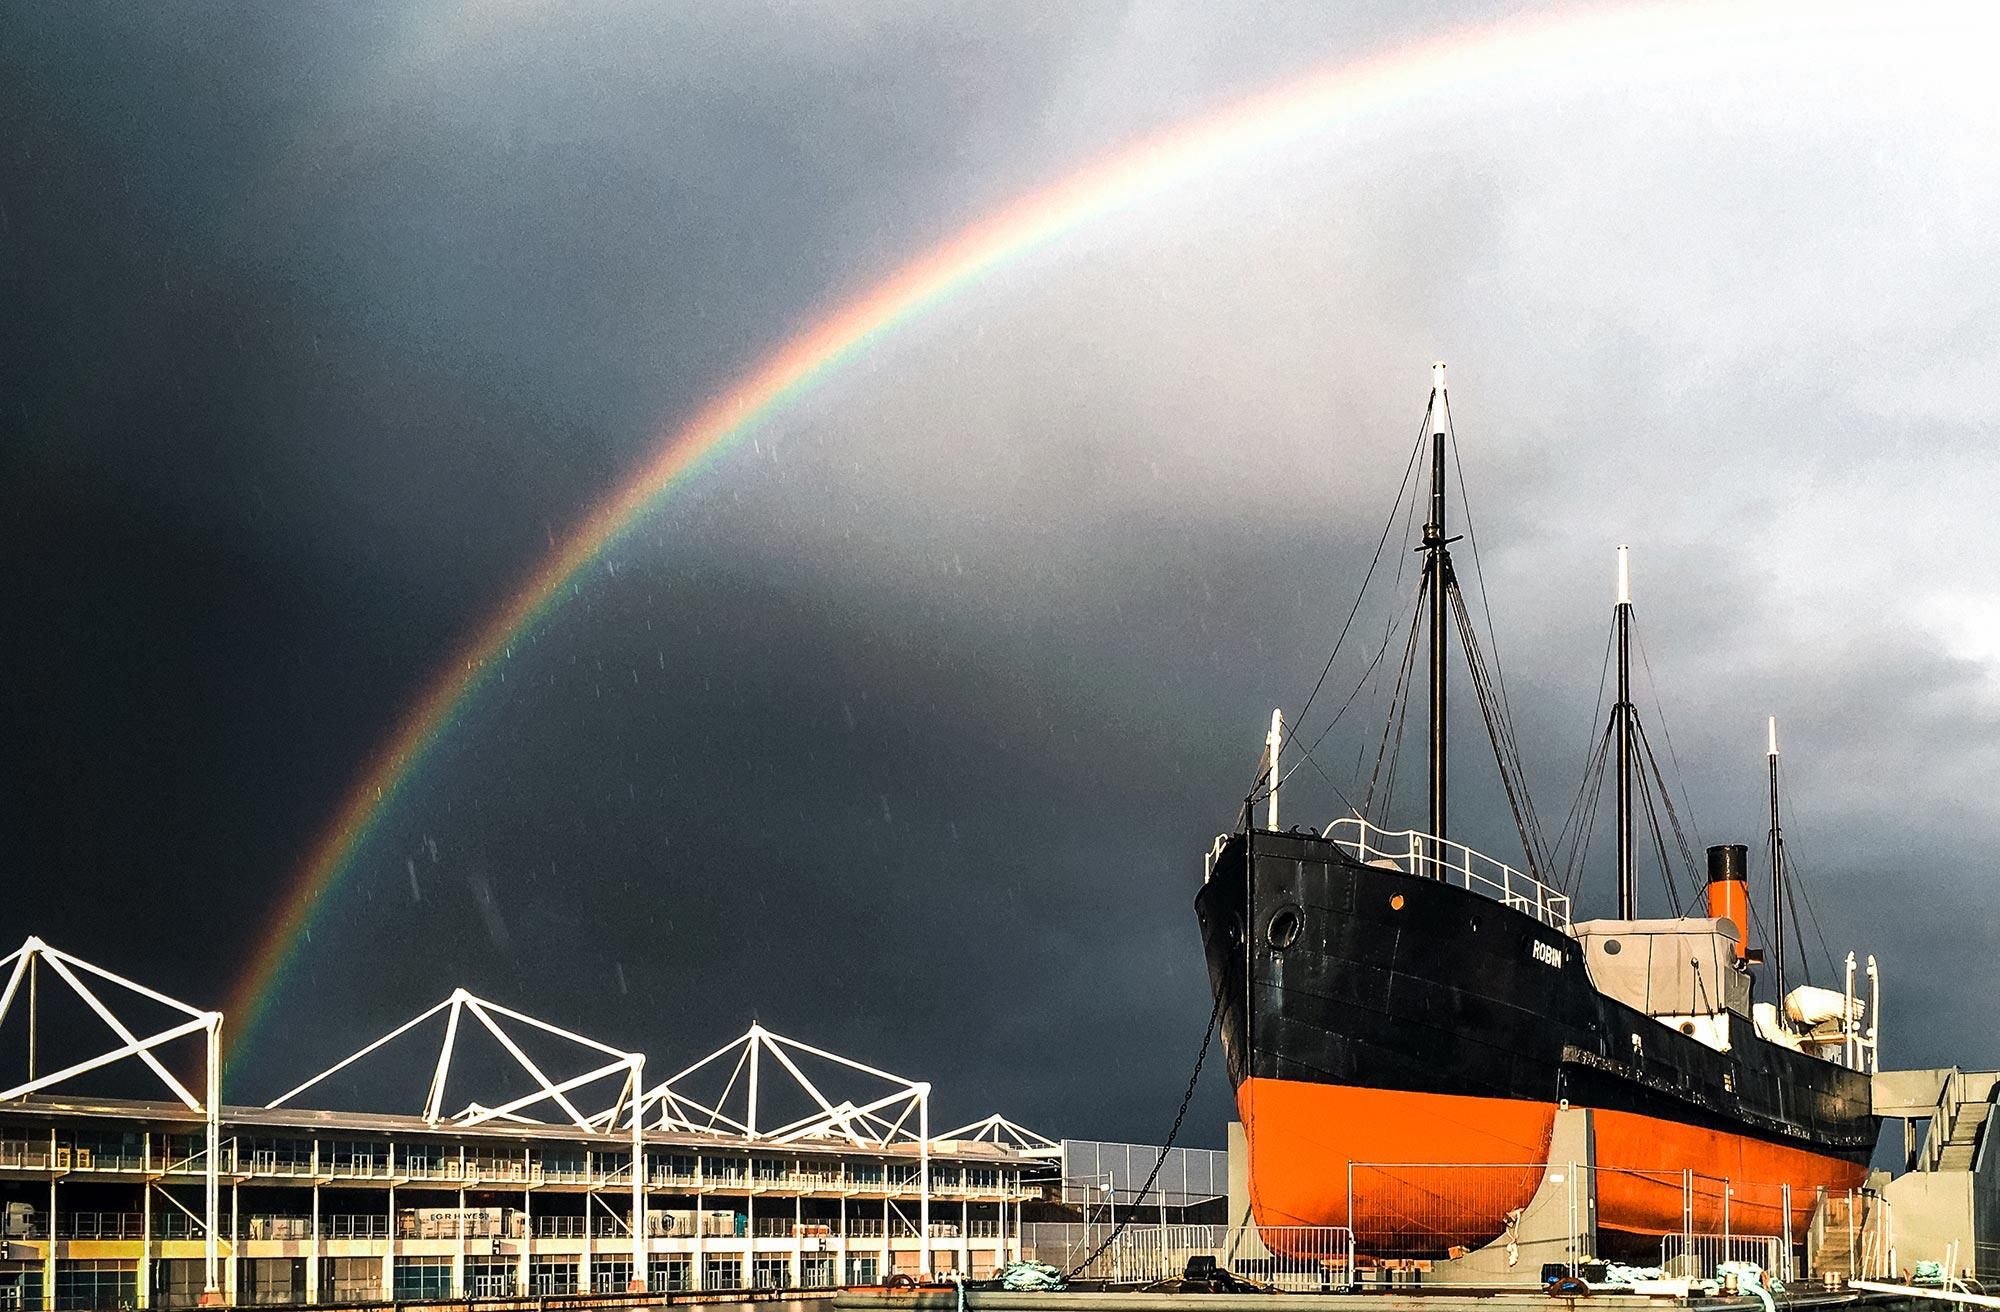 SS Robin in the Royal Docks with a rainbow in the sky